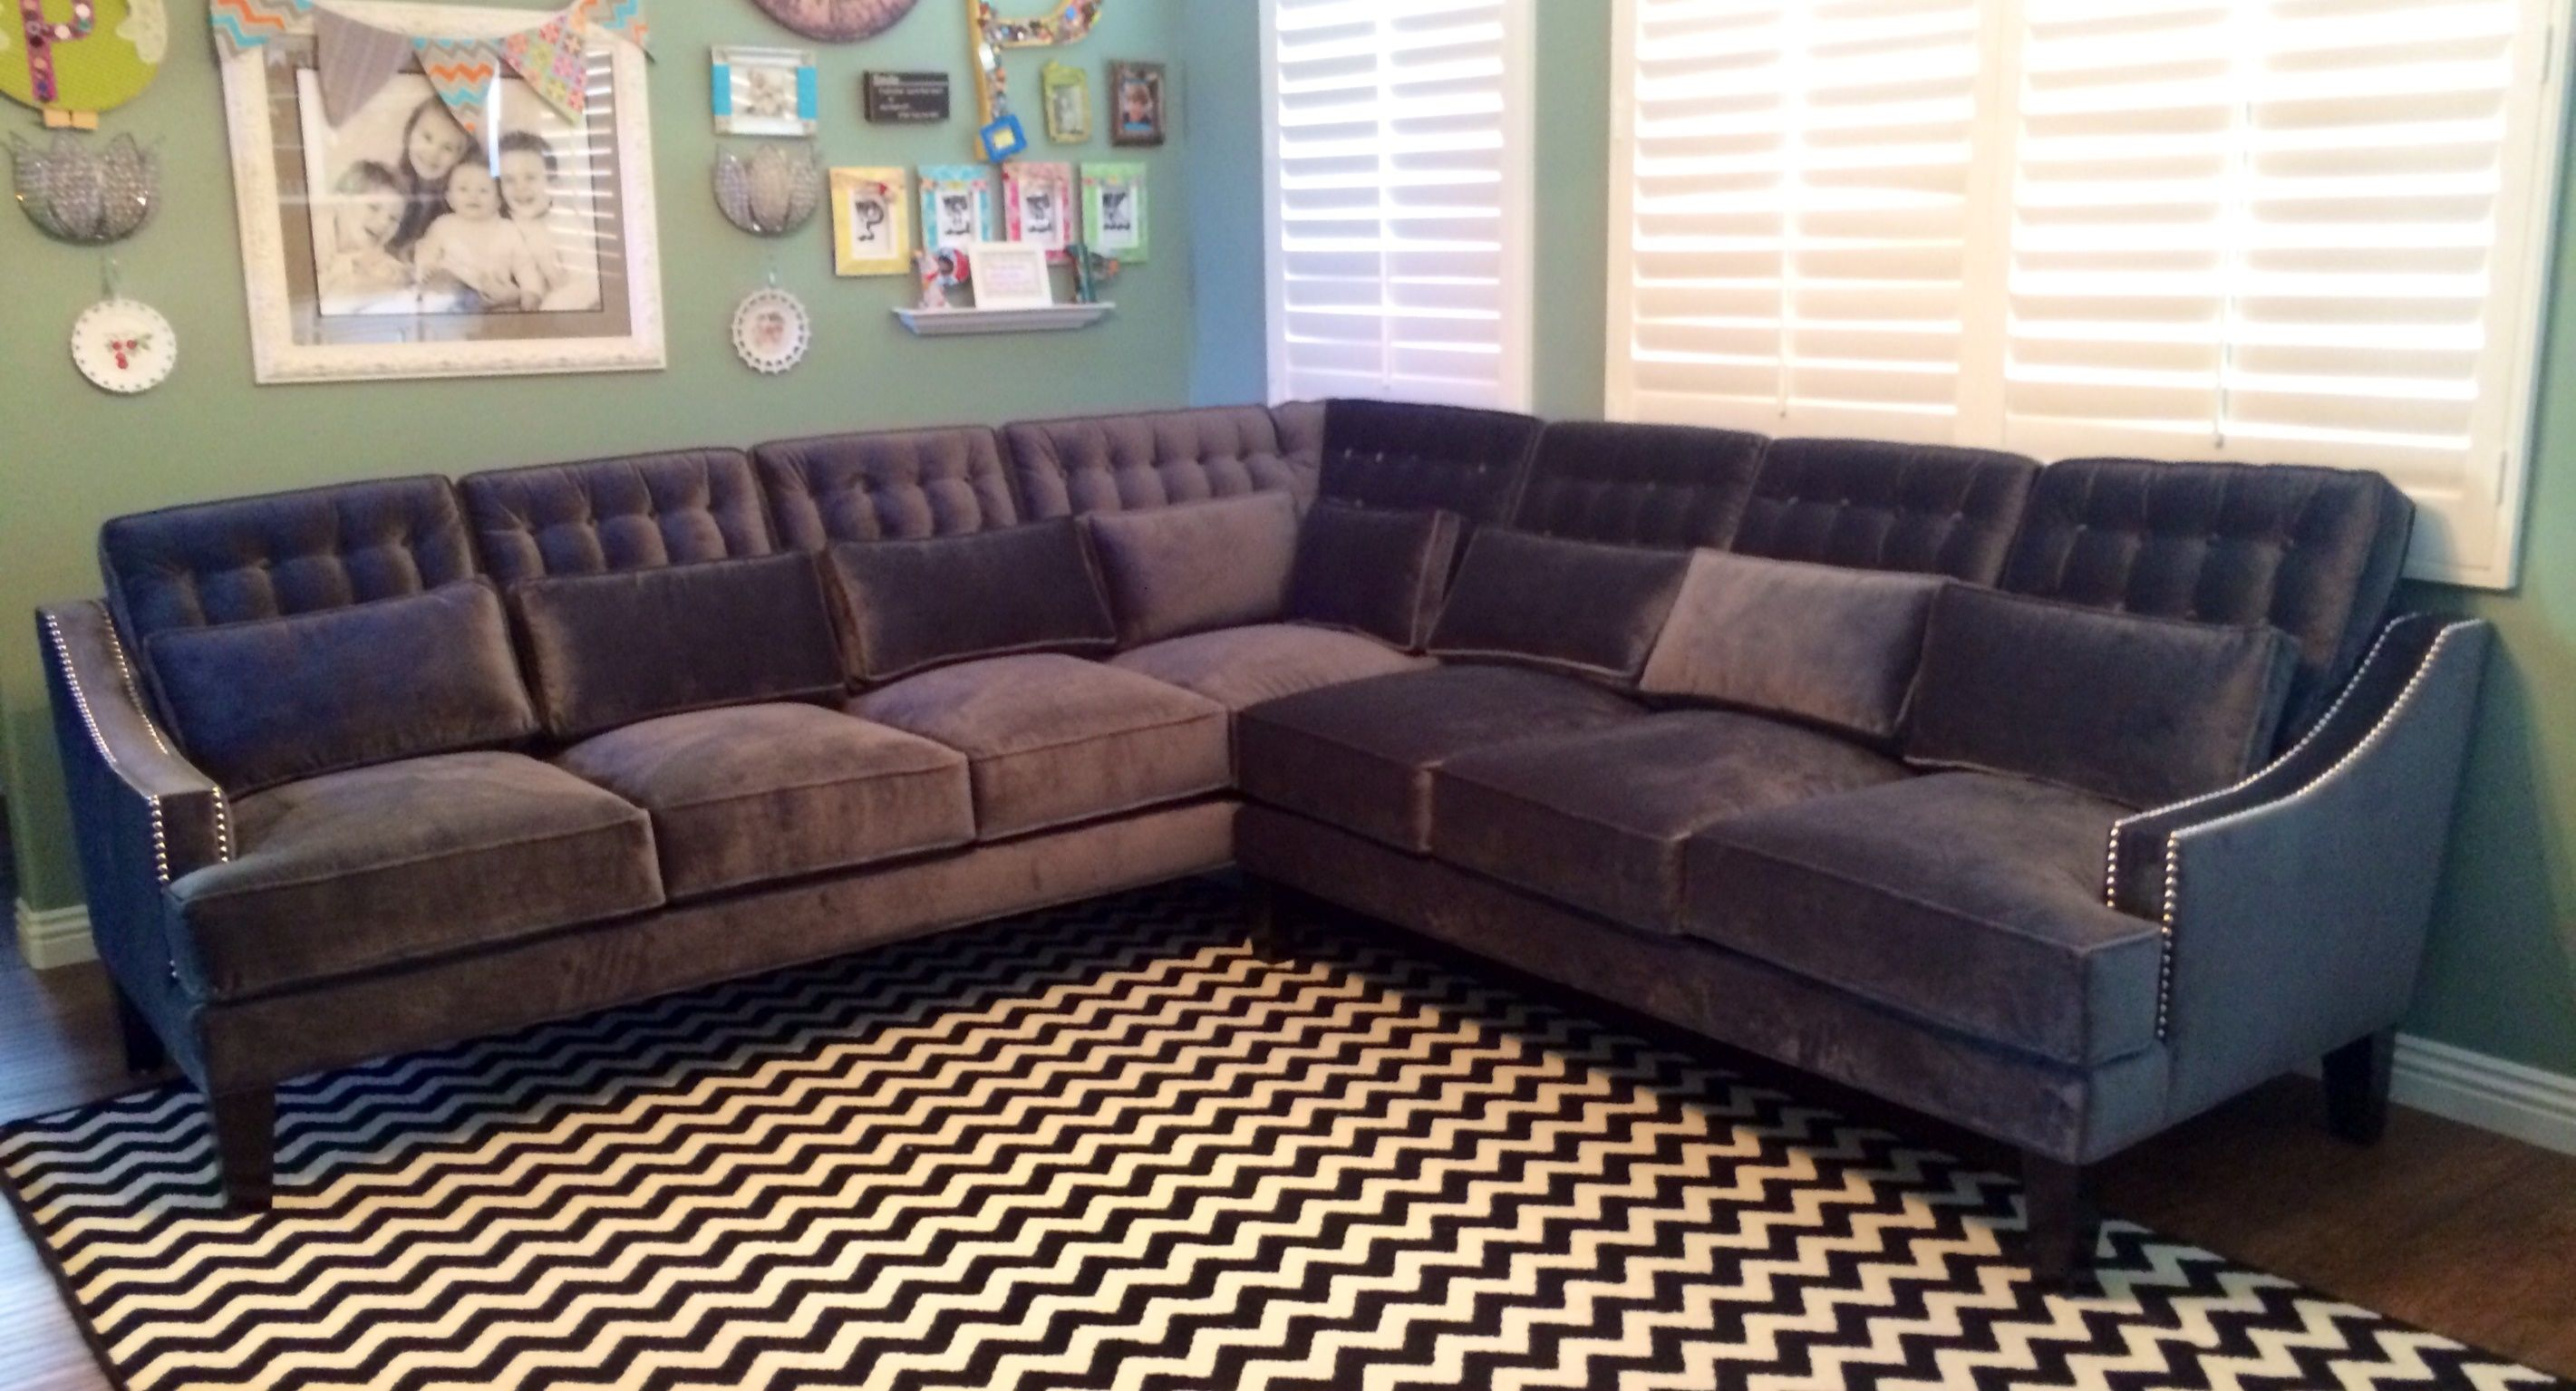 LISA STYLE SOFA ANY SIZE OR FABRIC ! MONARCH SOFAS Custom Sofa Or  Sectional. Ships Nationwide. Showrooms In Los Angeles, Orange County, Bay  Area, Dallas.